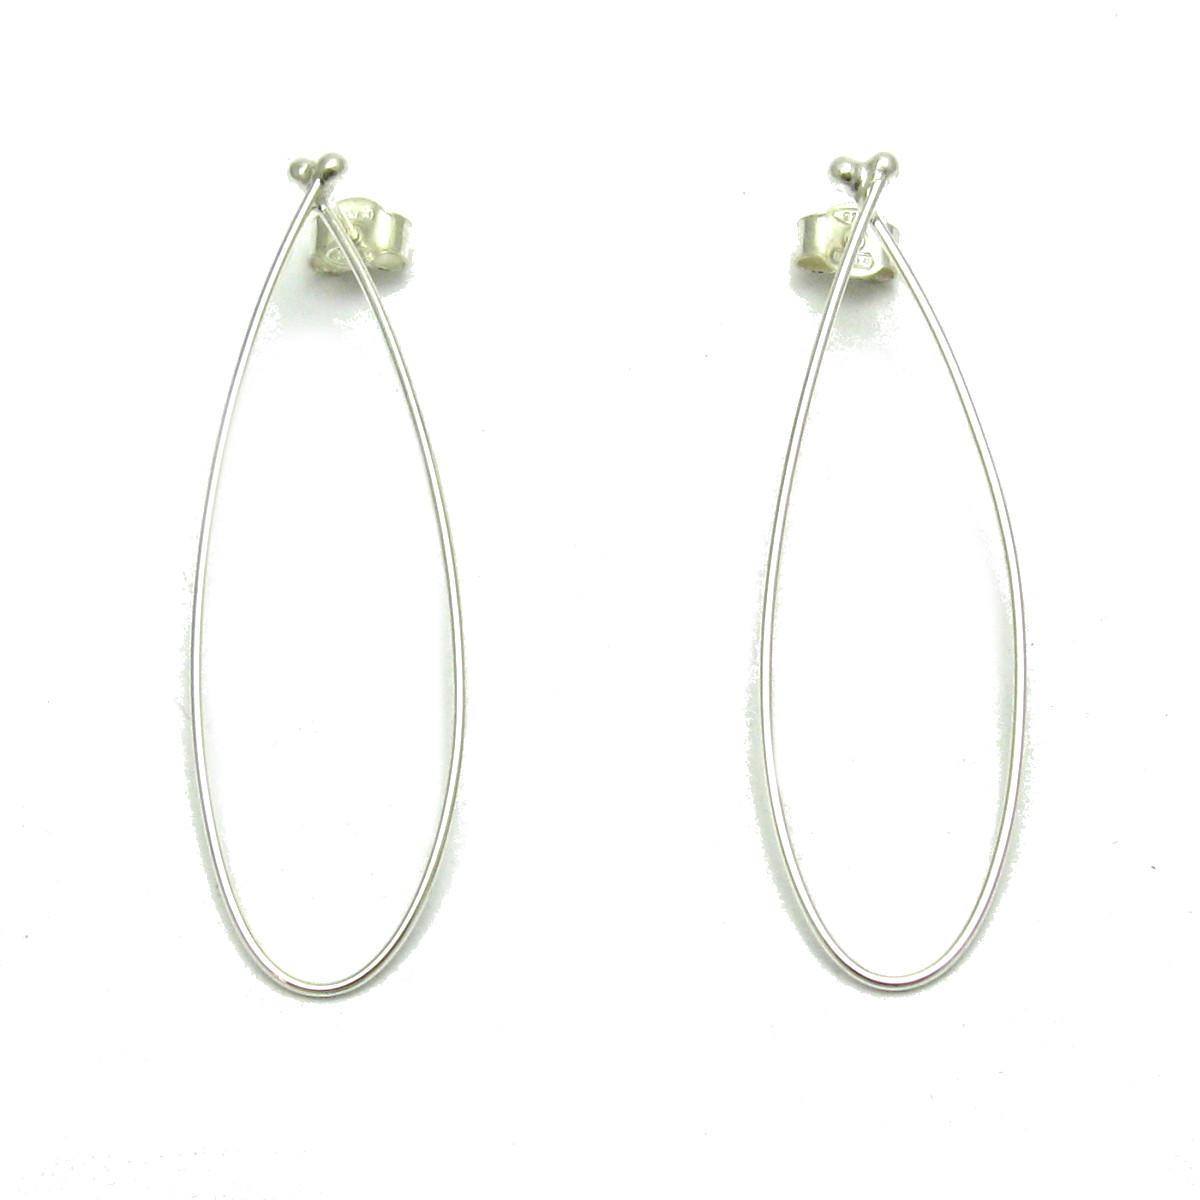 Silver earrings - E000666